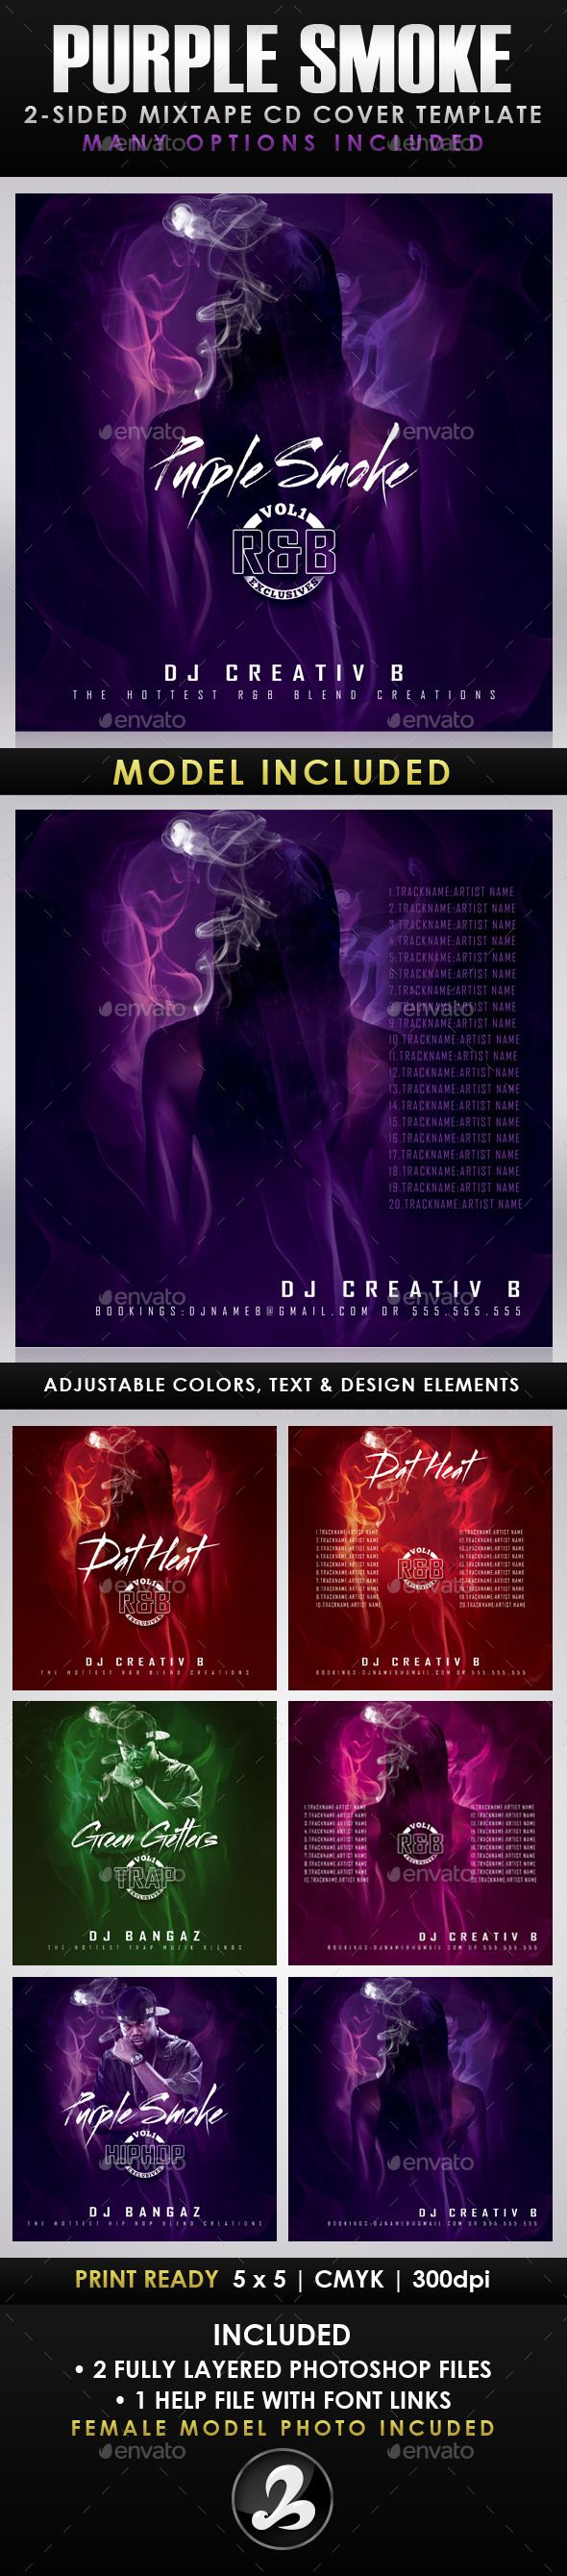 149 best CD & DVD Templates images on Pinterest | Cd cover template ...